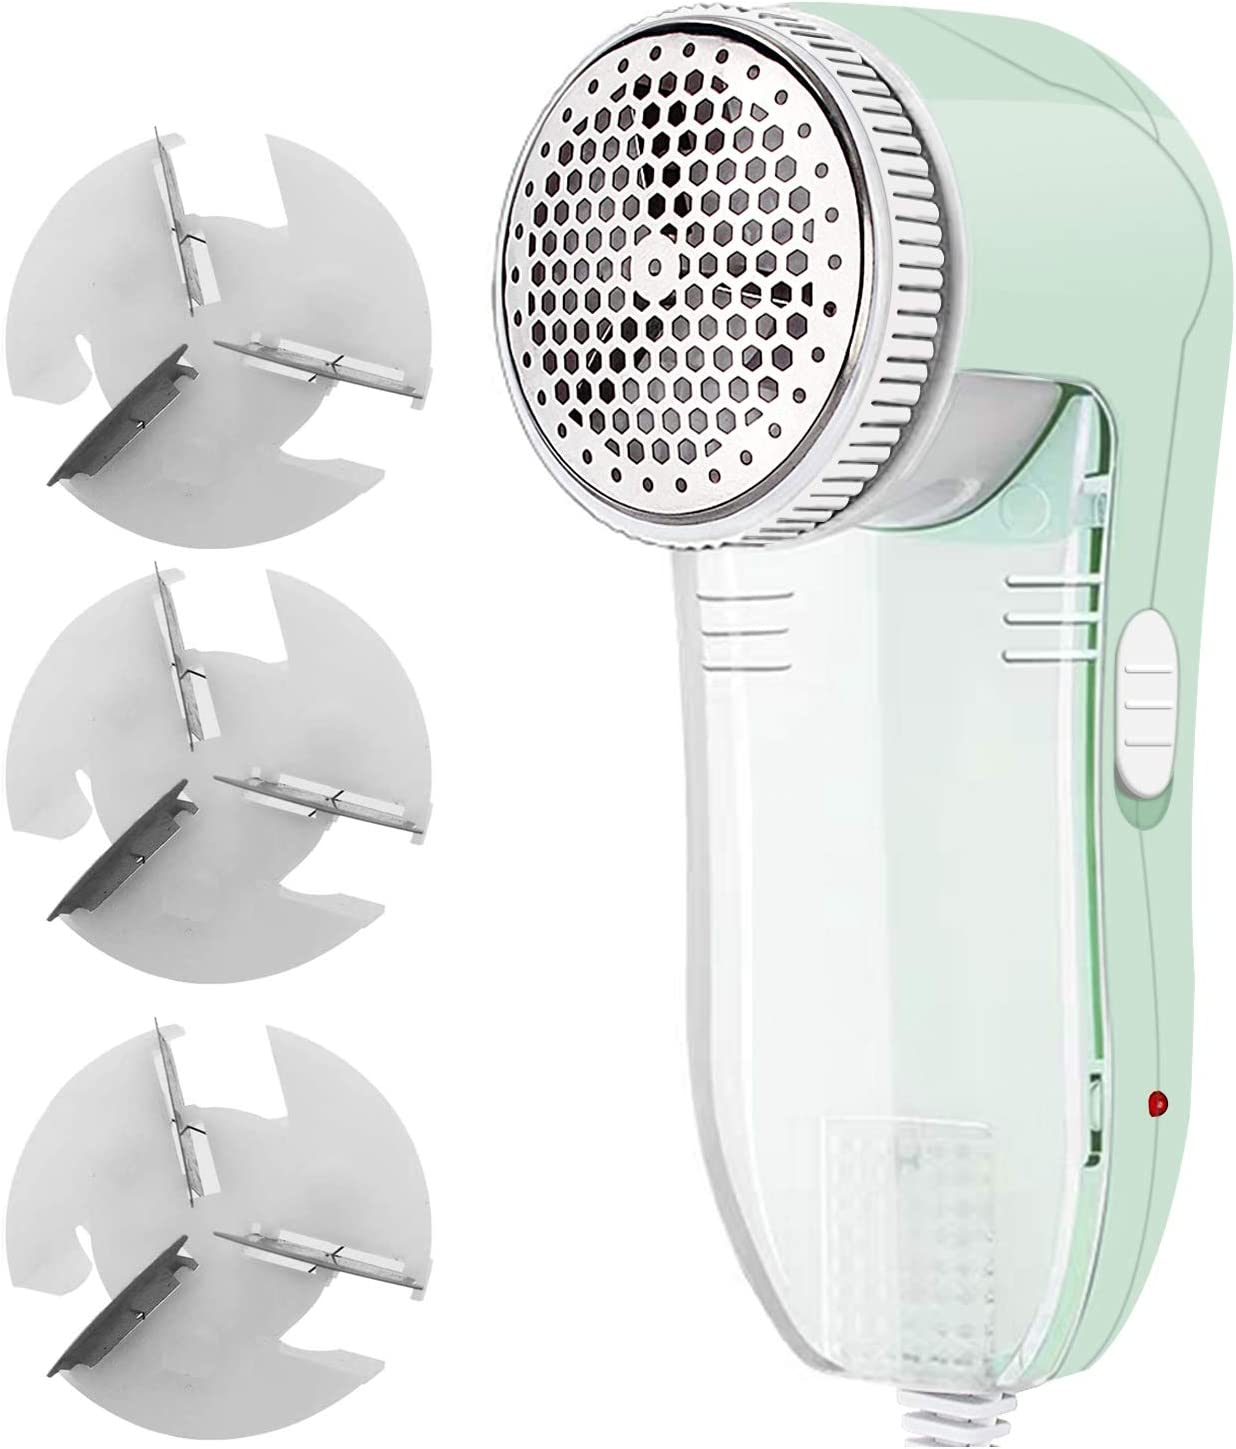 NEOYARDE Fabric Shaver, Fuzz Balls Pills Bobbles Lint Remover Defuzzer with 3 Replaceable 3-Leaf Stainless Steel Blades, AC120V Plug and Play